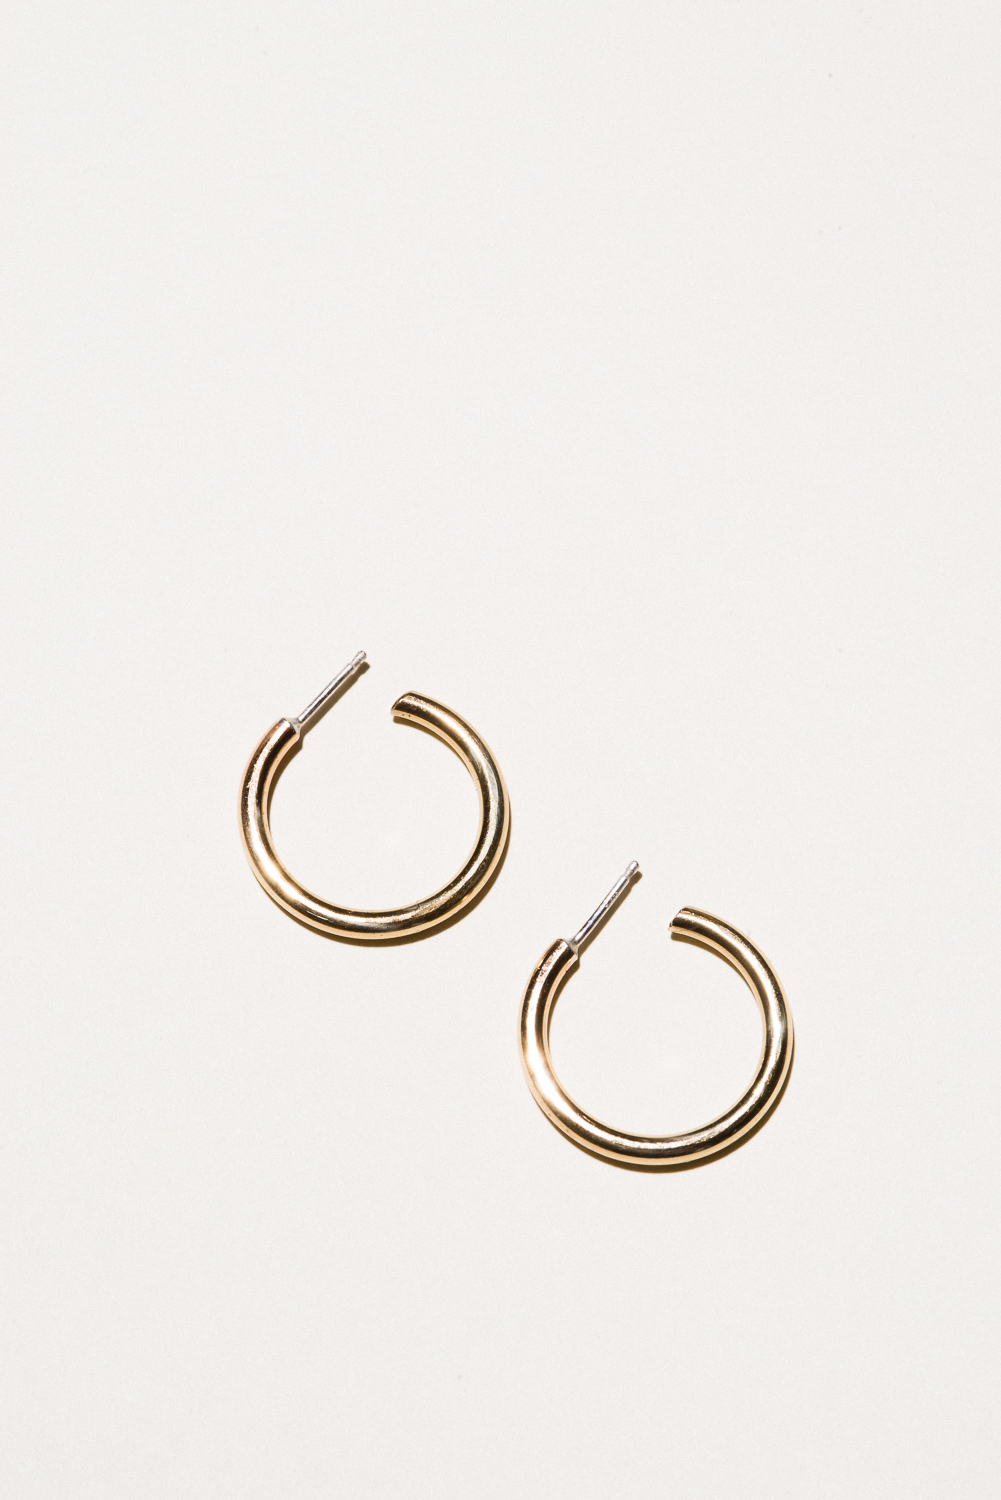 Medium Brass Classic Hoops - .9 in diameterJewelers Brass, Lacquer FinishHand Smithed$50